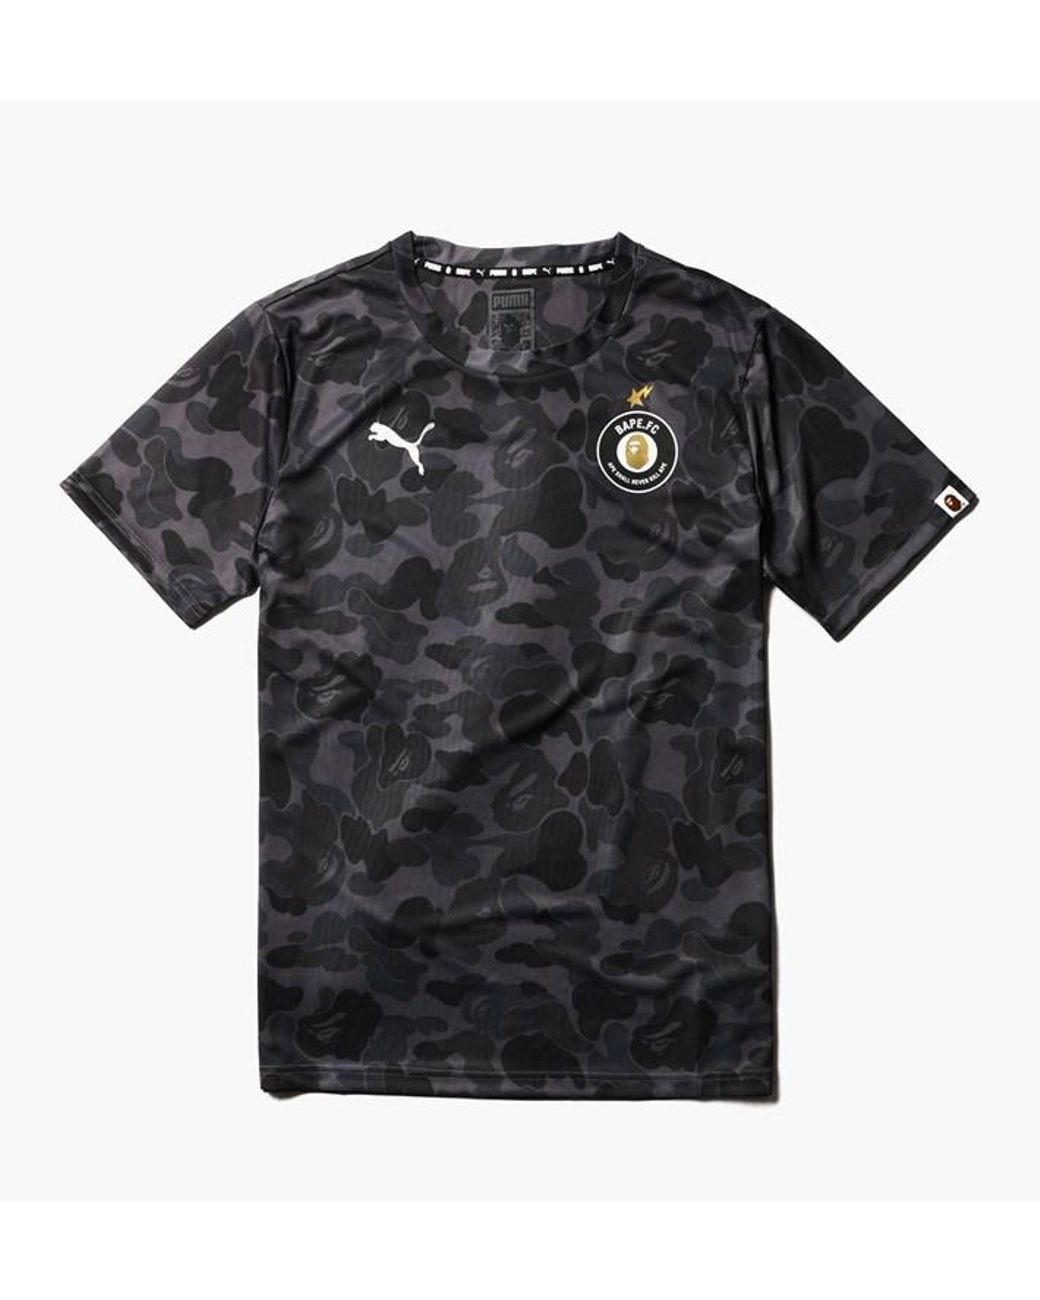 1809d7c6 A Bathing Ape X Puma Full Abc Camo Tee Black in Black for Men - Lyst